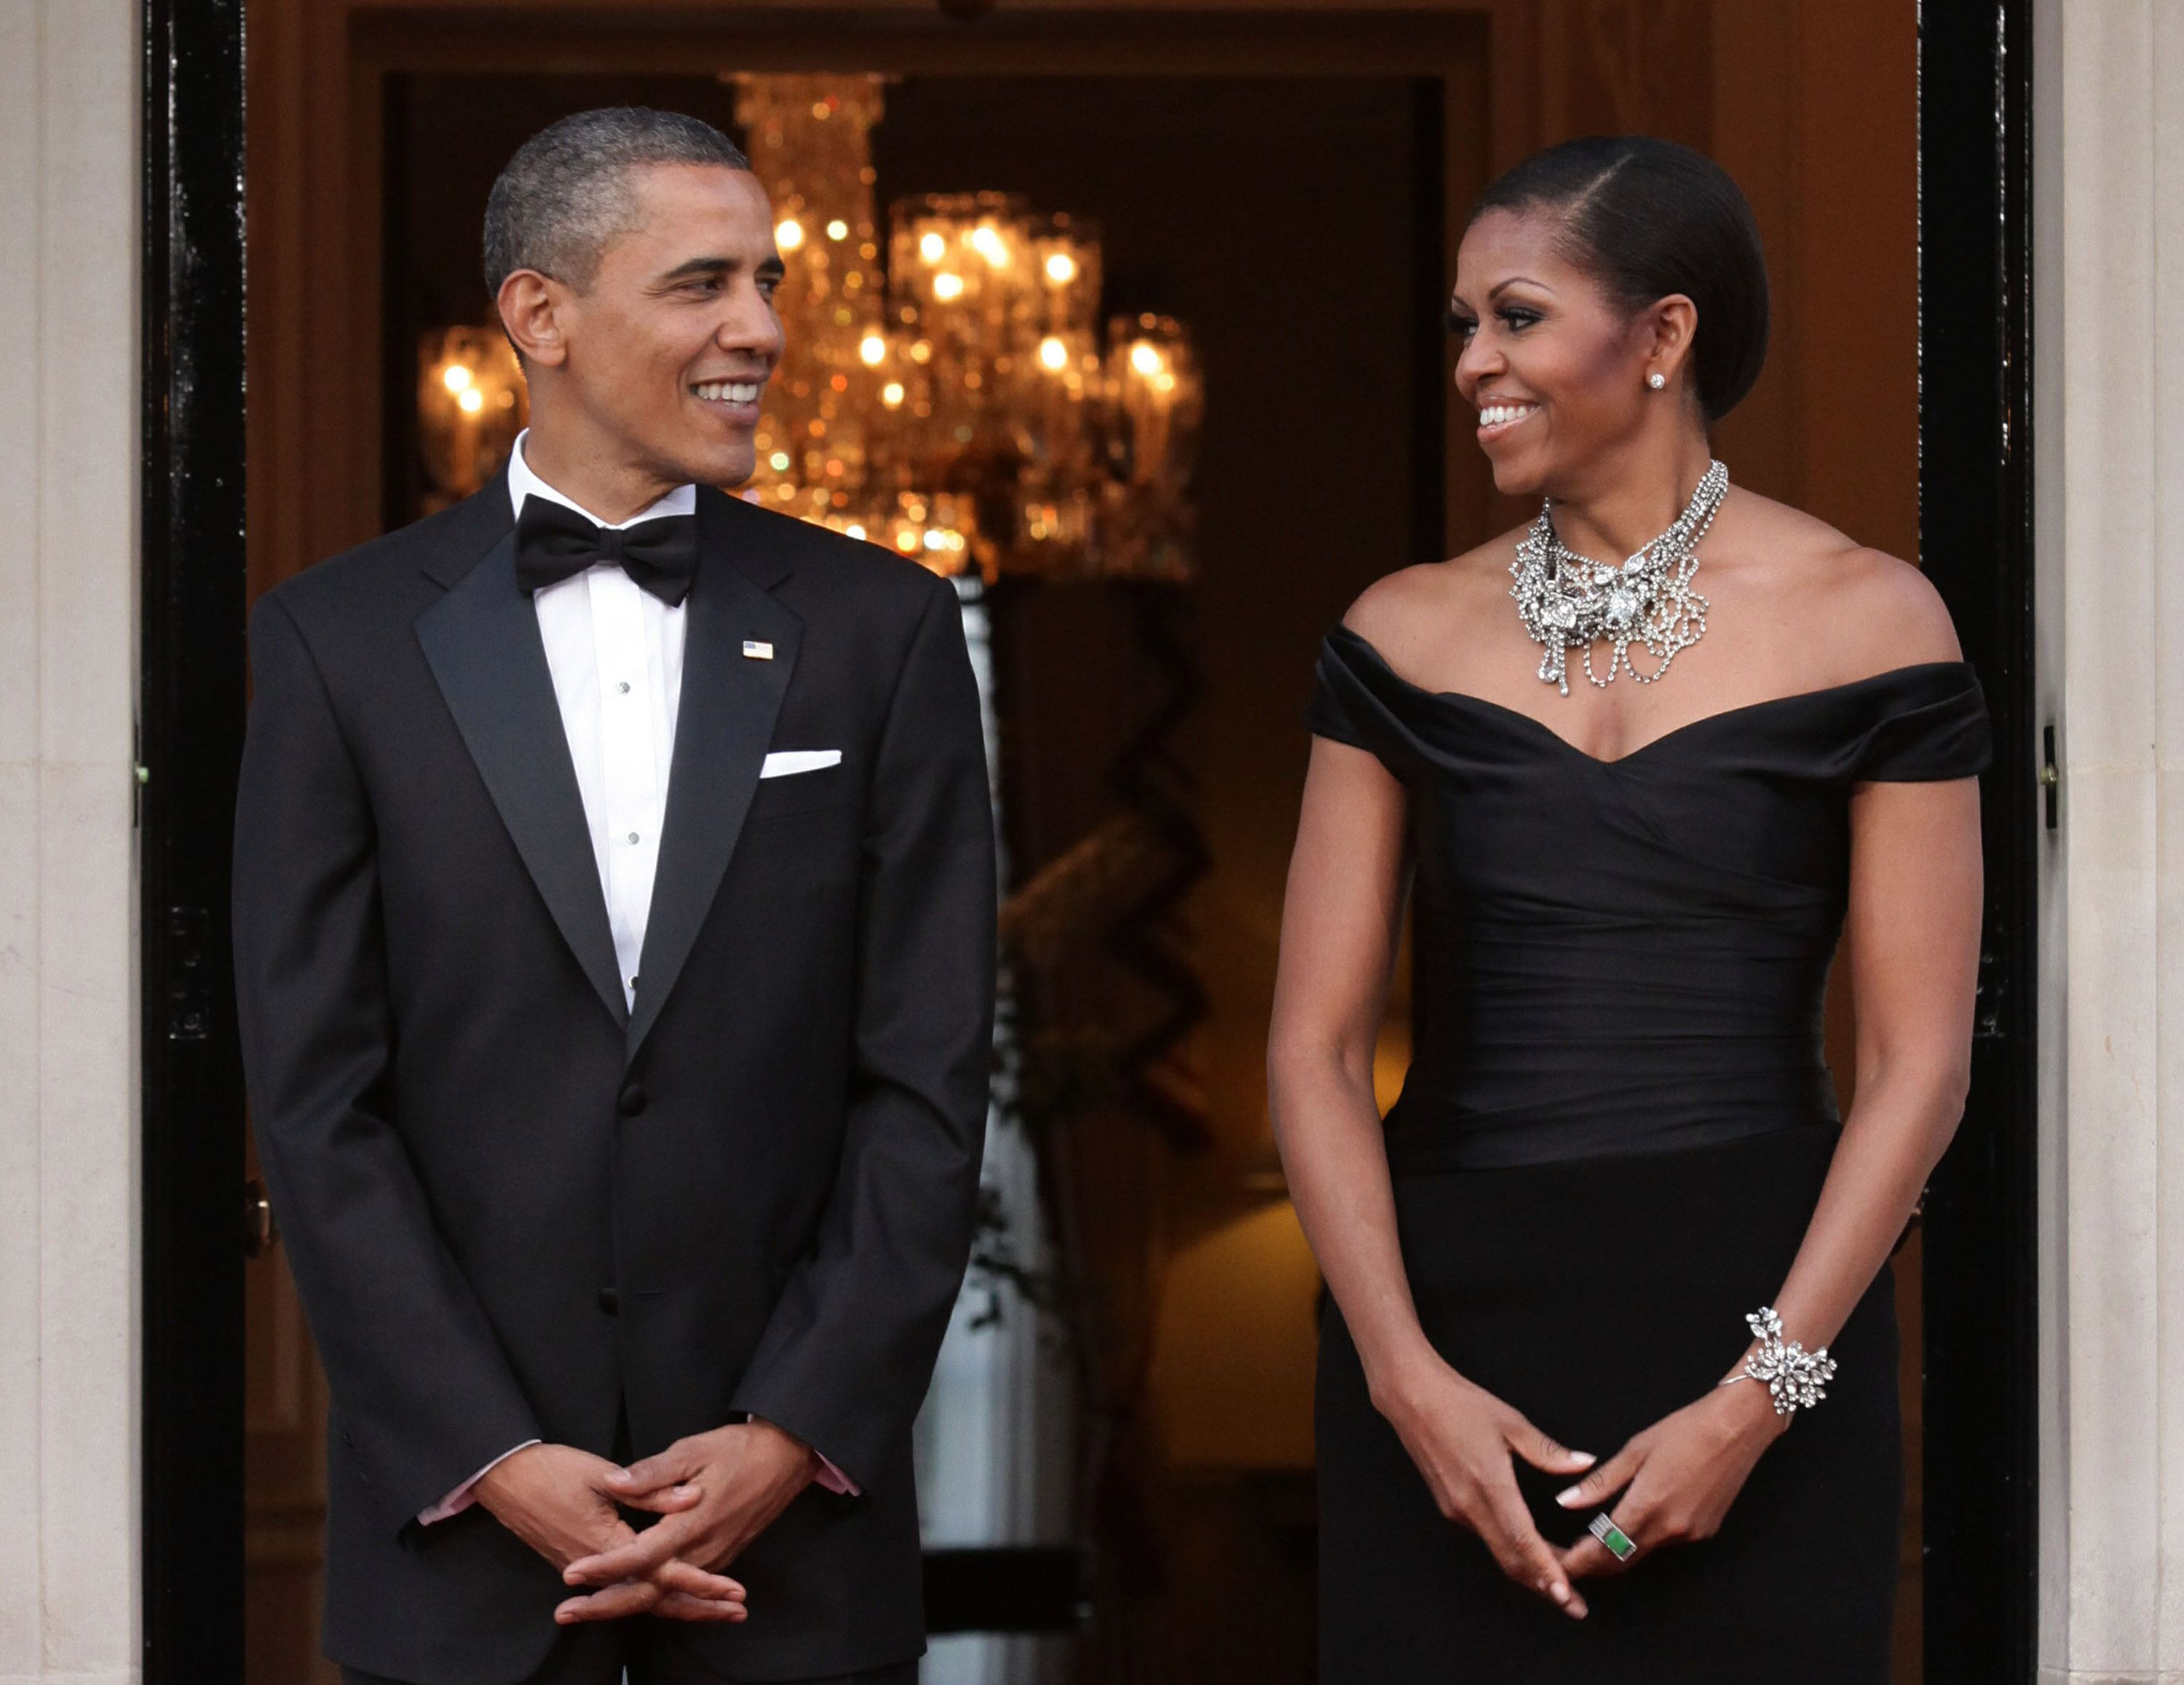 How Barack and Michelle Obama Worked on Their Marriage After Leaving the White House